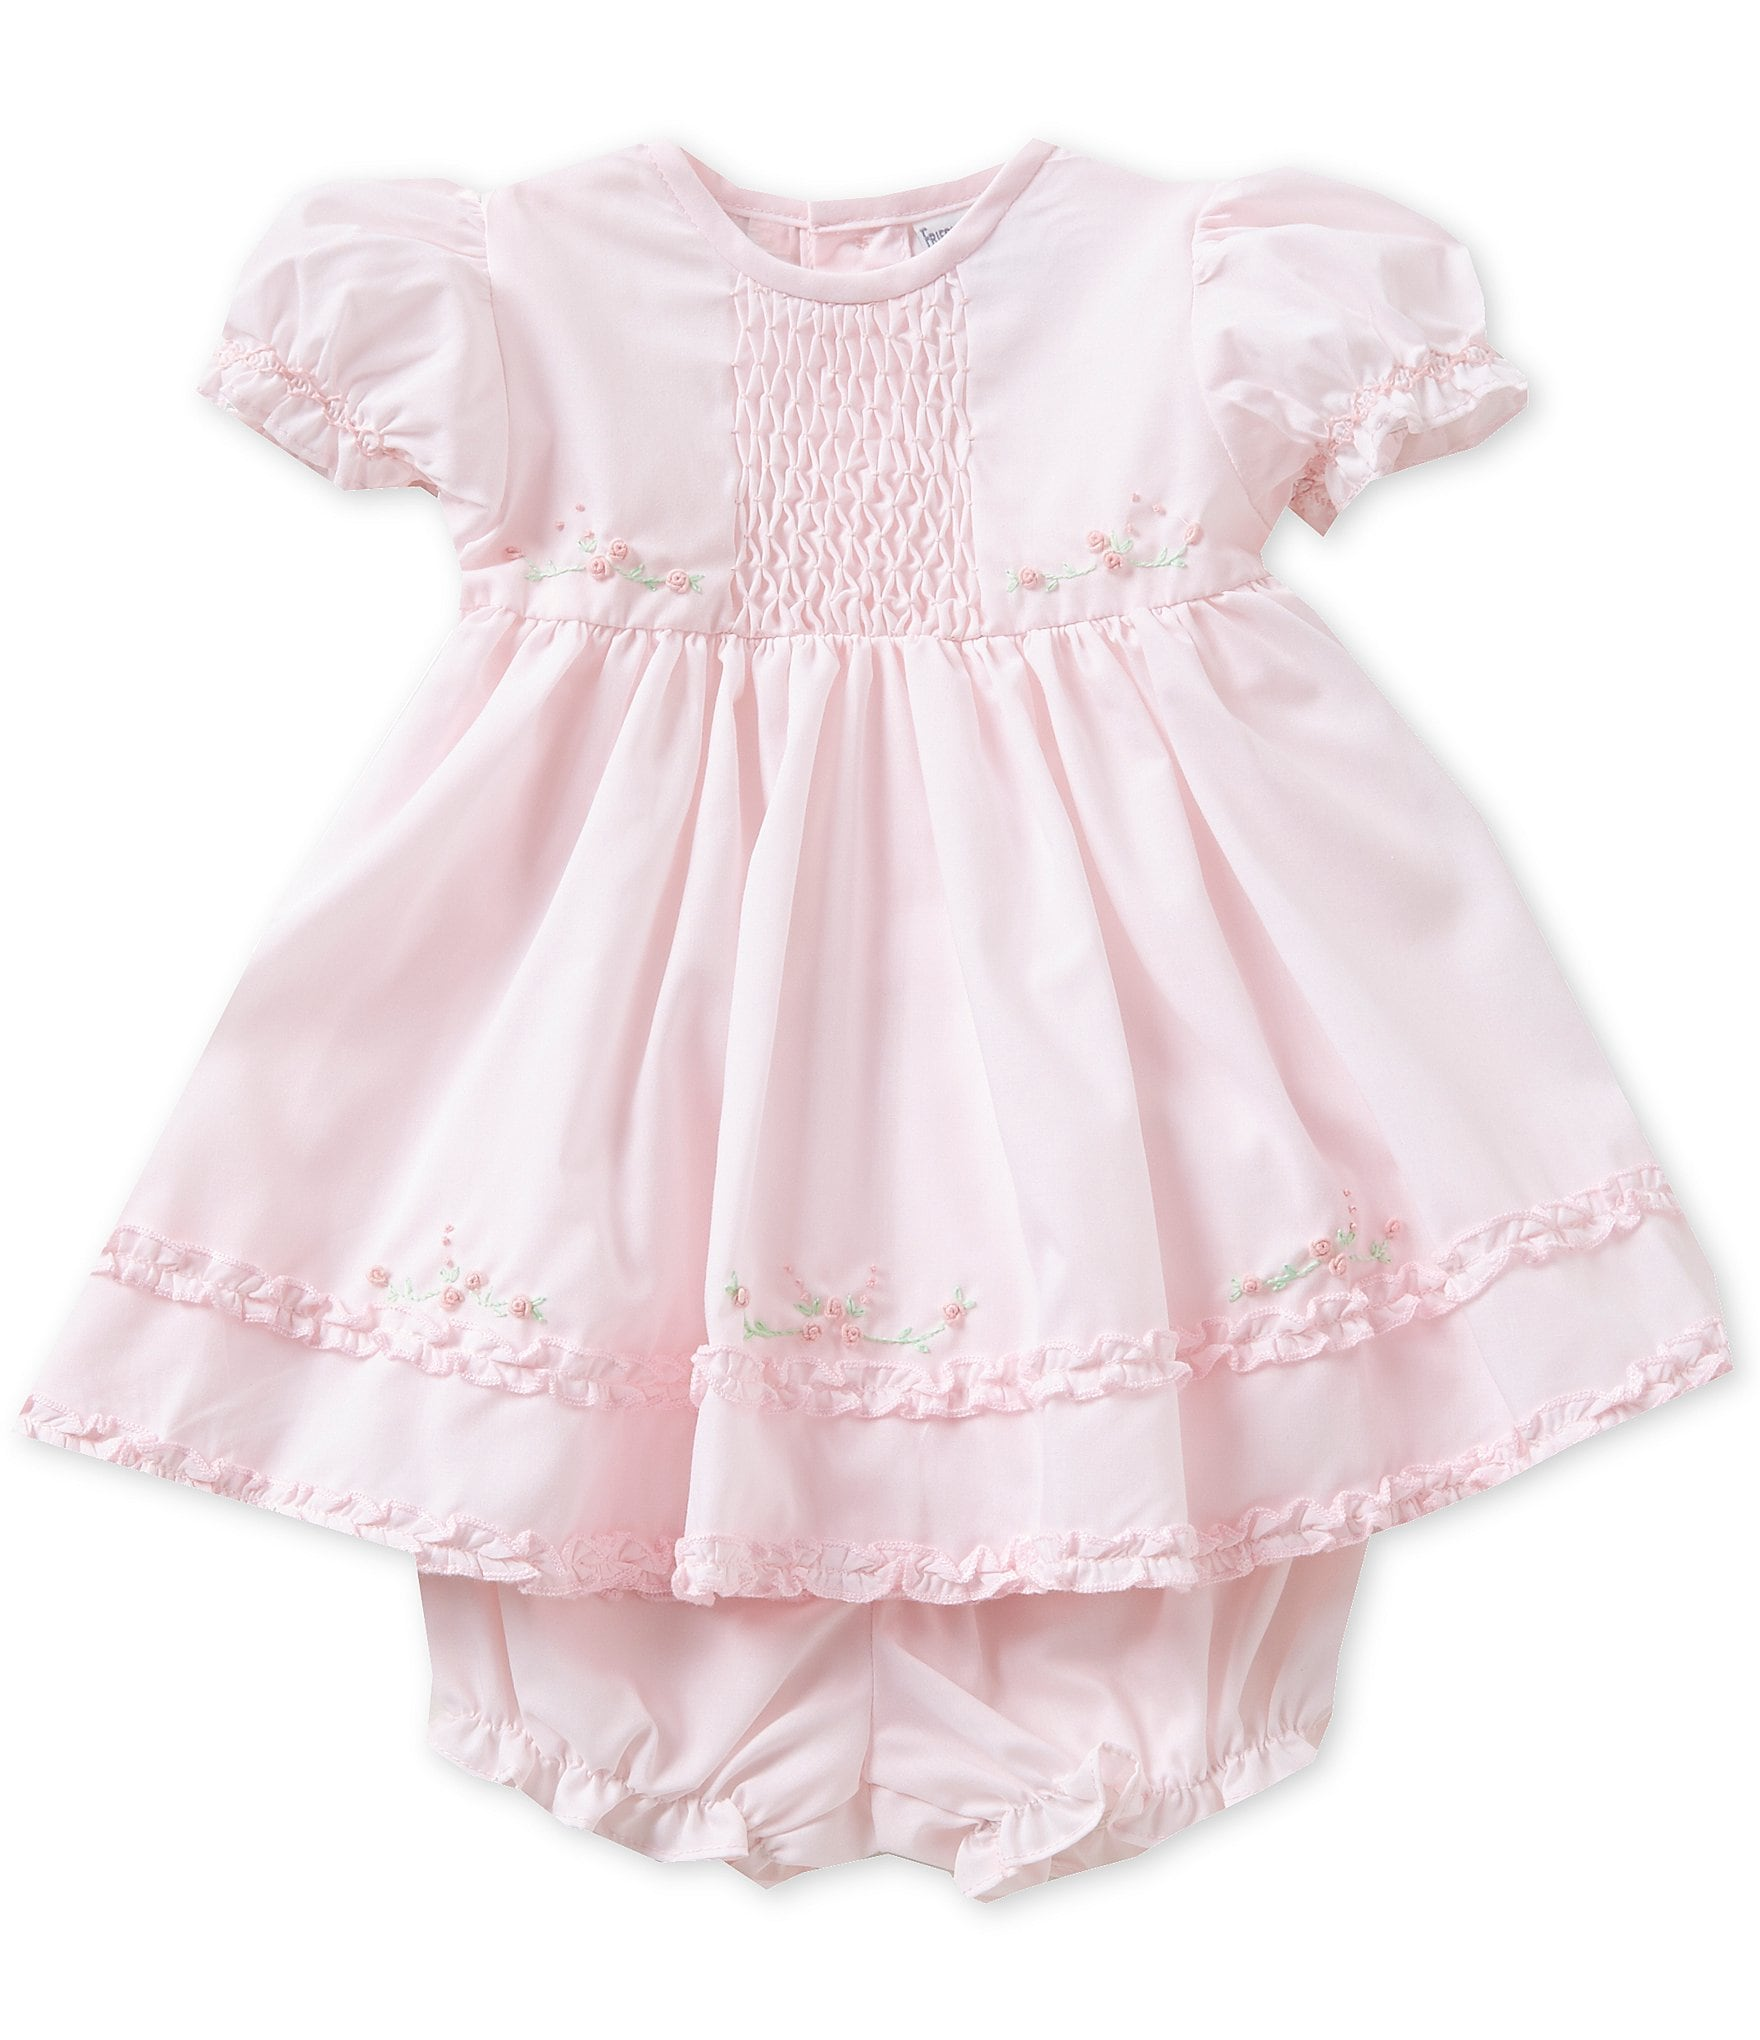 Dress your little hipsters in trendy and affordable baby clothes. Bodysuits, shoes, and leggings are just a few of the items you'll fall for. Shop now. Dress your little hipsters in trendy and affordable baby clothes. Bodysuits, shoes, and leggings are just a few of the items you'll fall for.